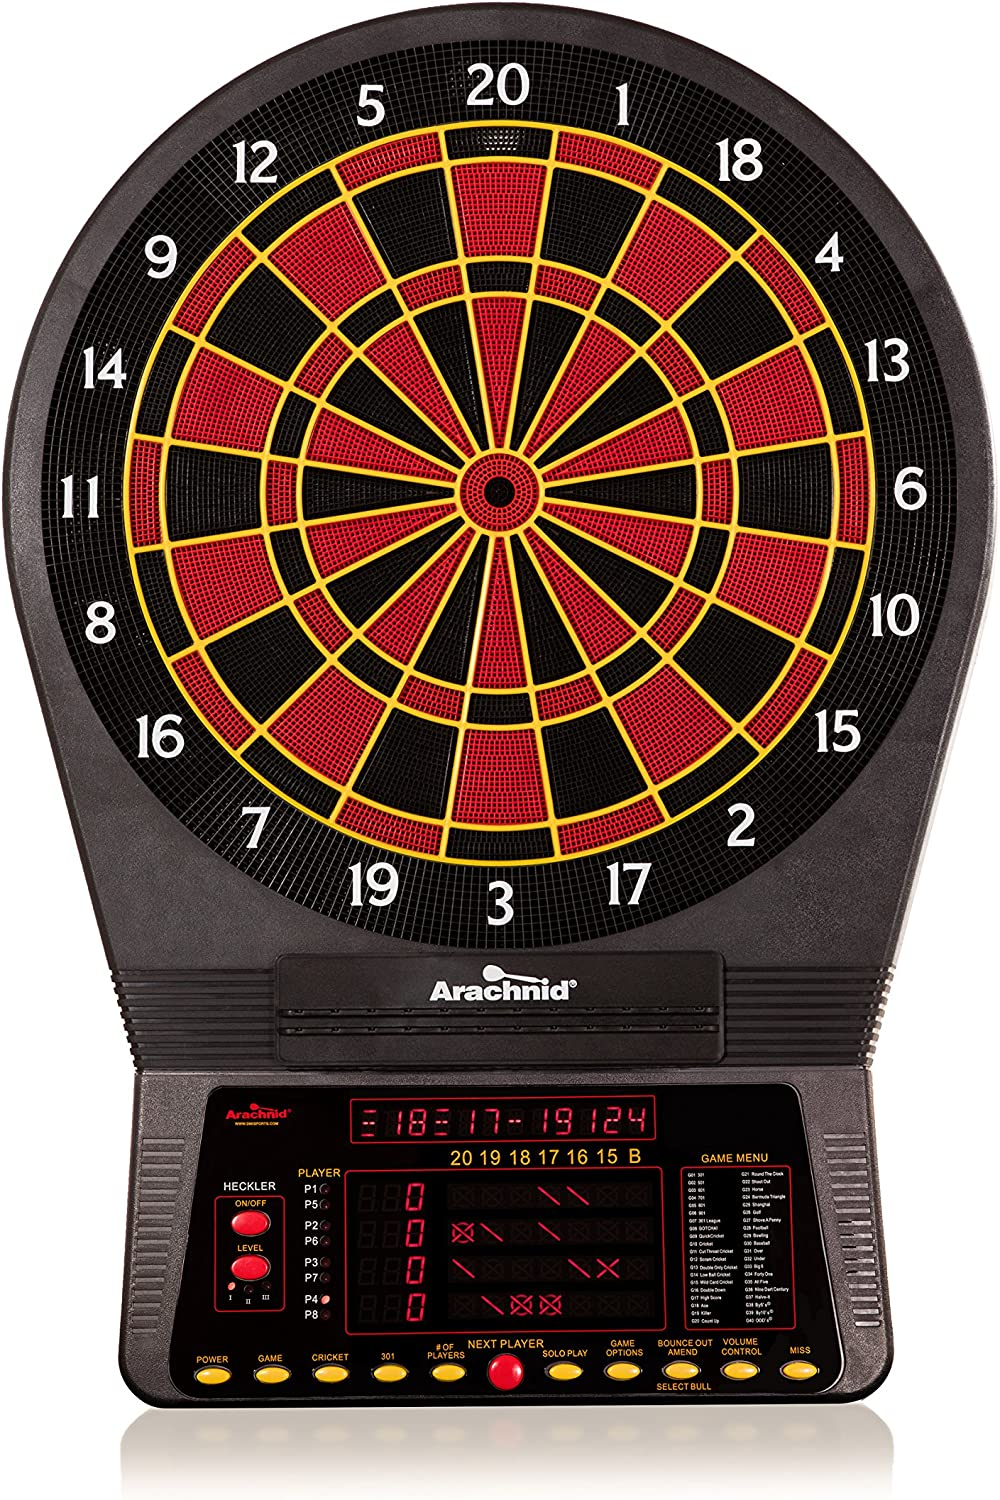 Arachnid Cricket Pro 800 Electronic Dartboard with NylonTough Segments for Improved Durability and Playability and Micro-thin Segment Dividers for ReducedBounce-outs : Electronic Dartboard : Sports & Outdoors